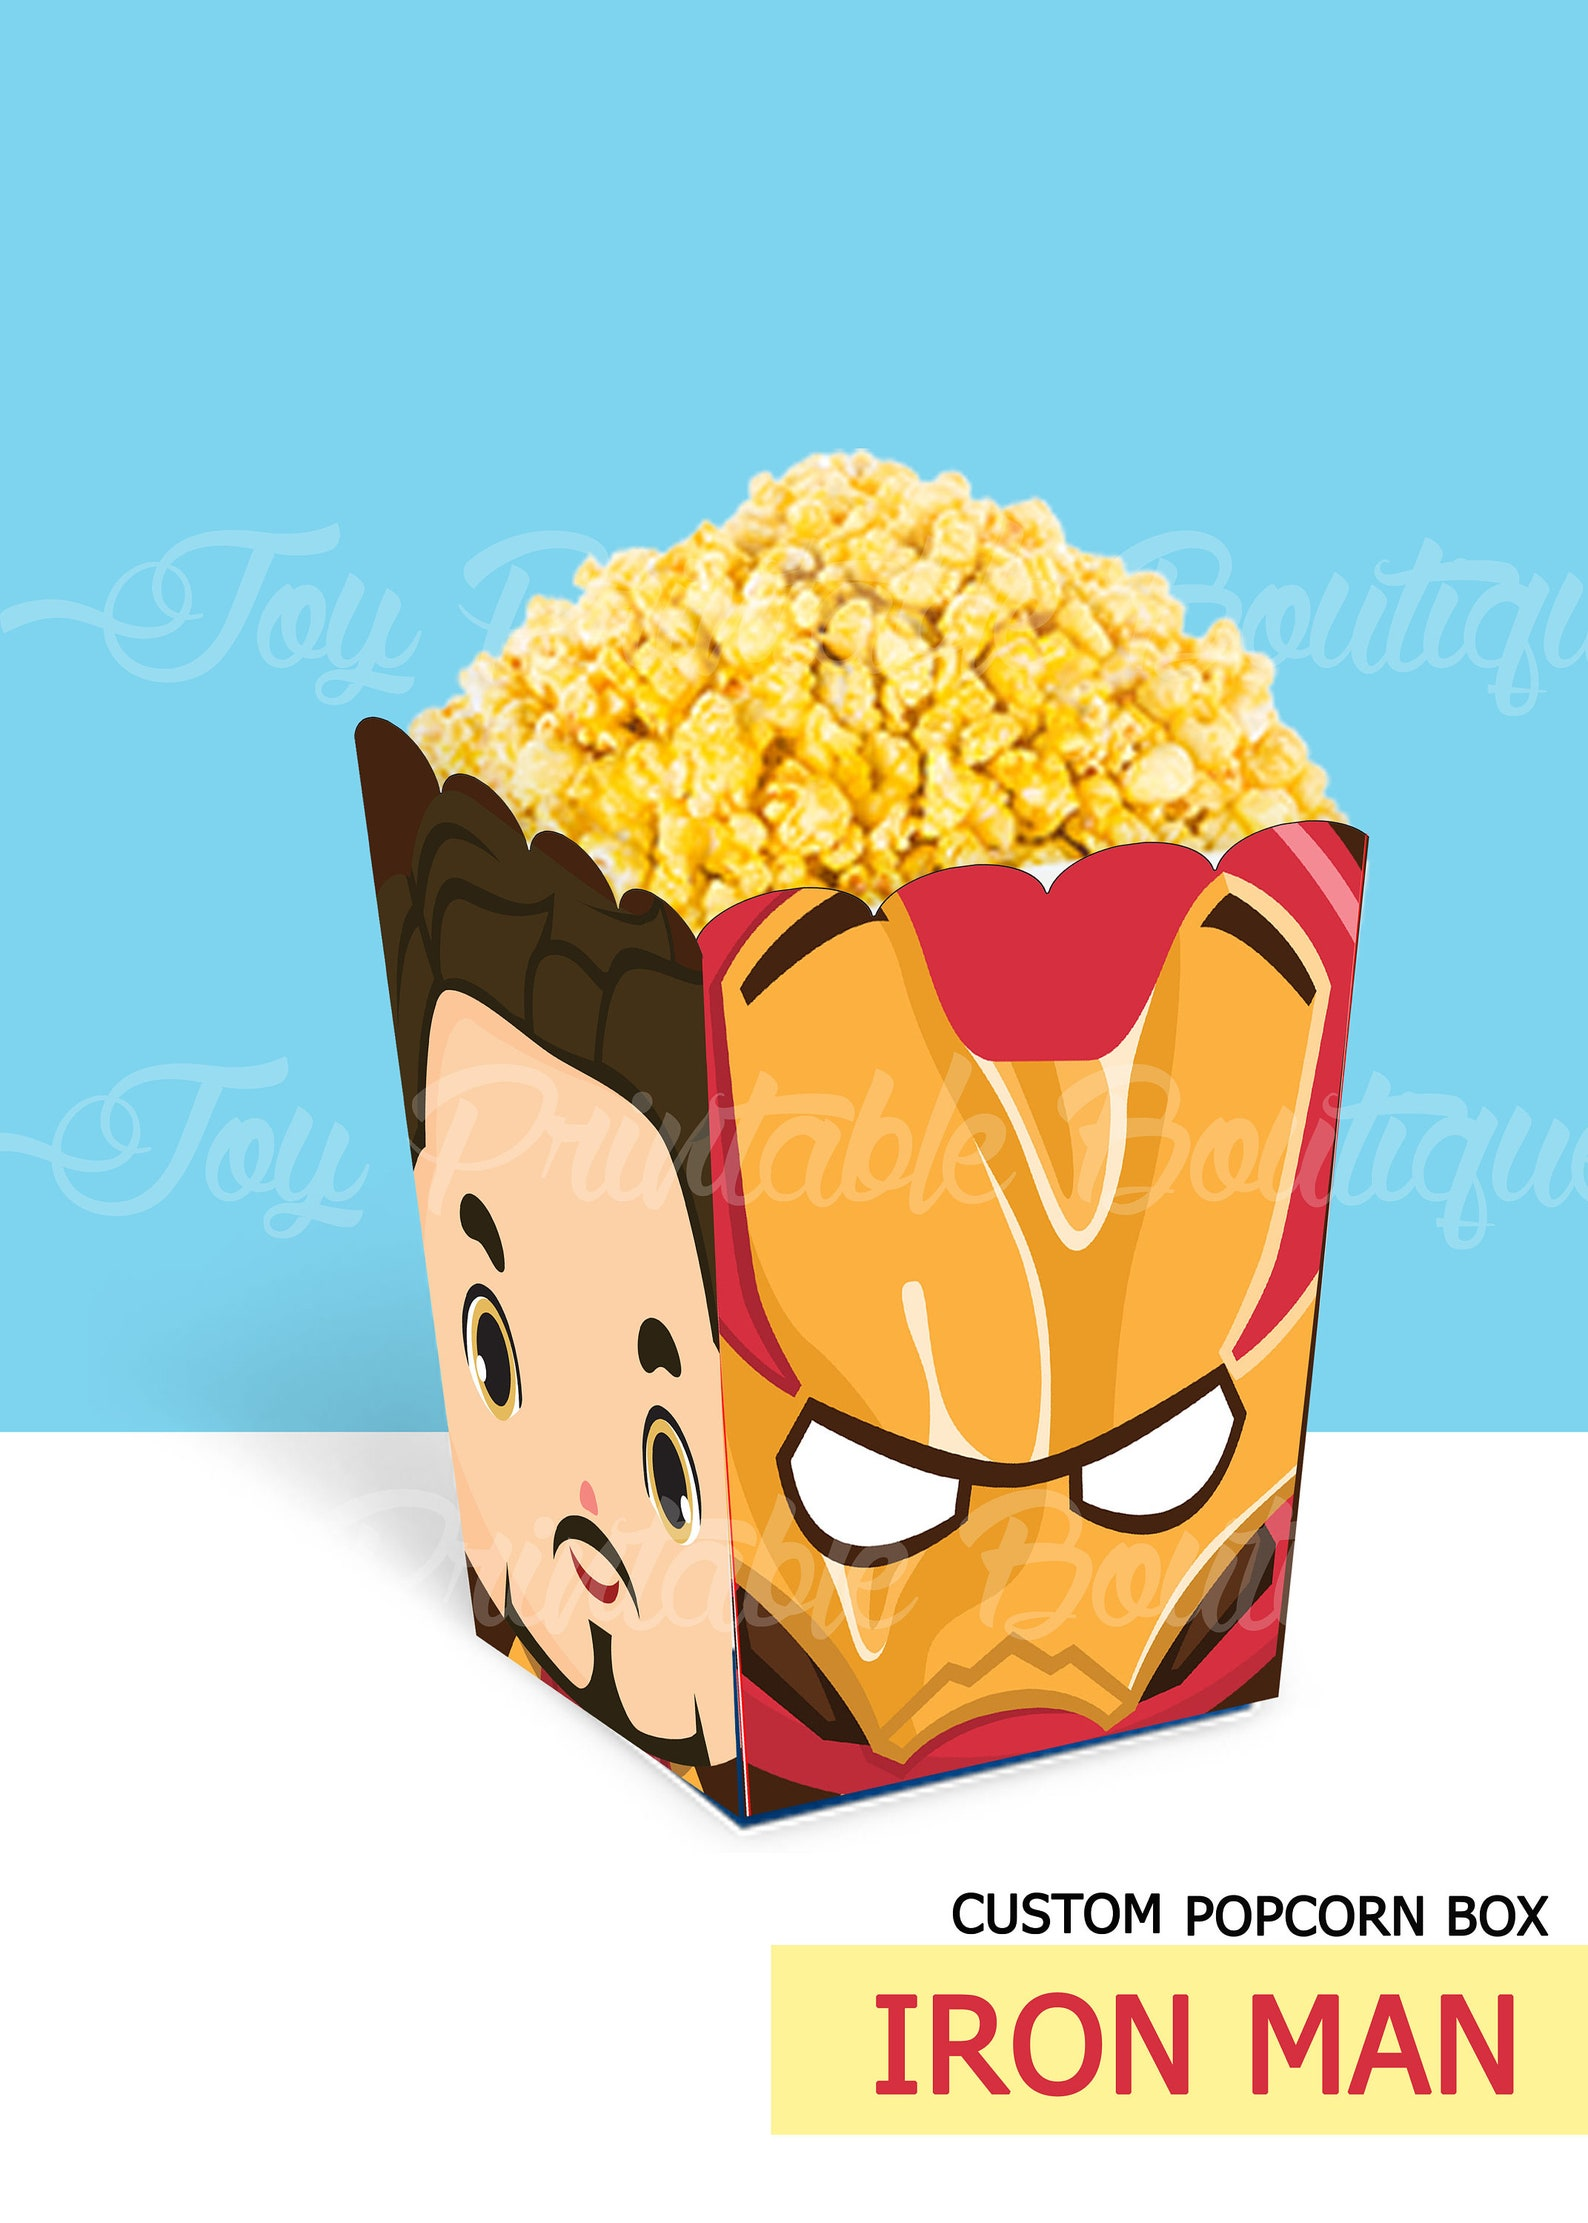 Iron Man Printable Popcorn Boxes